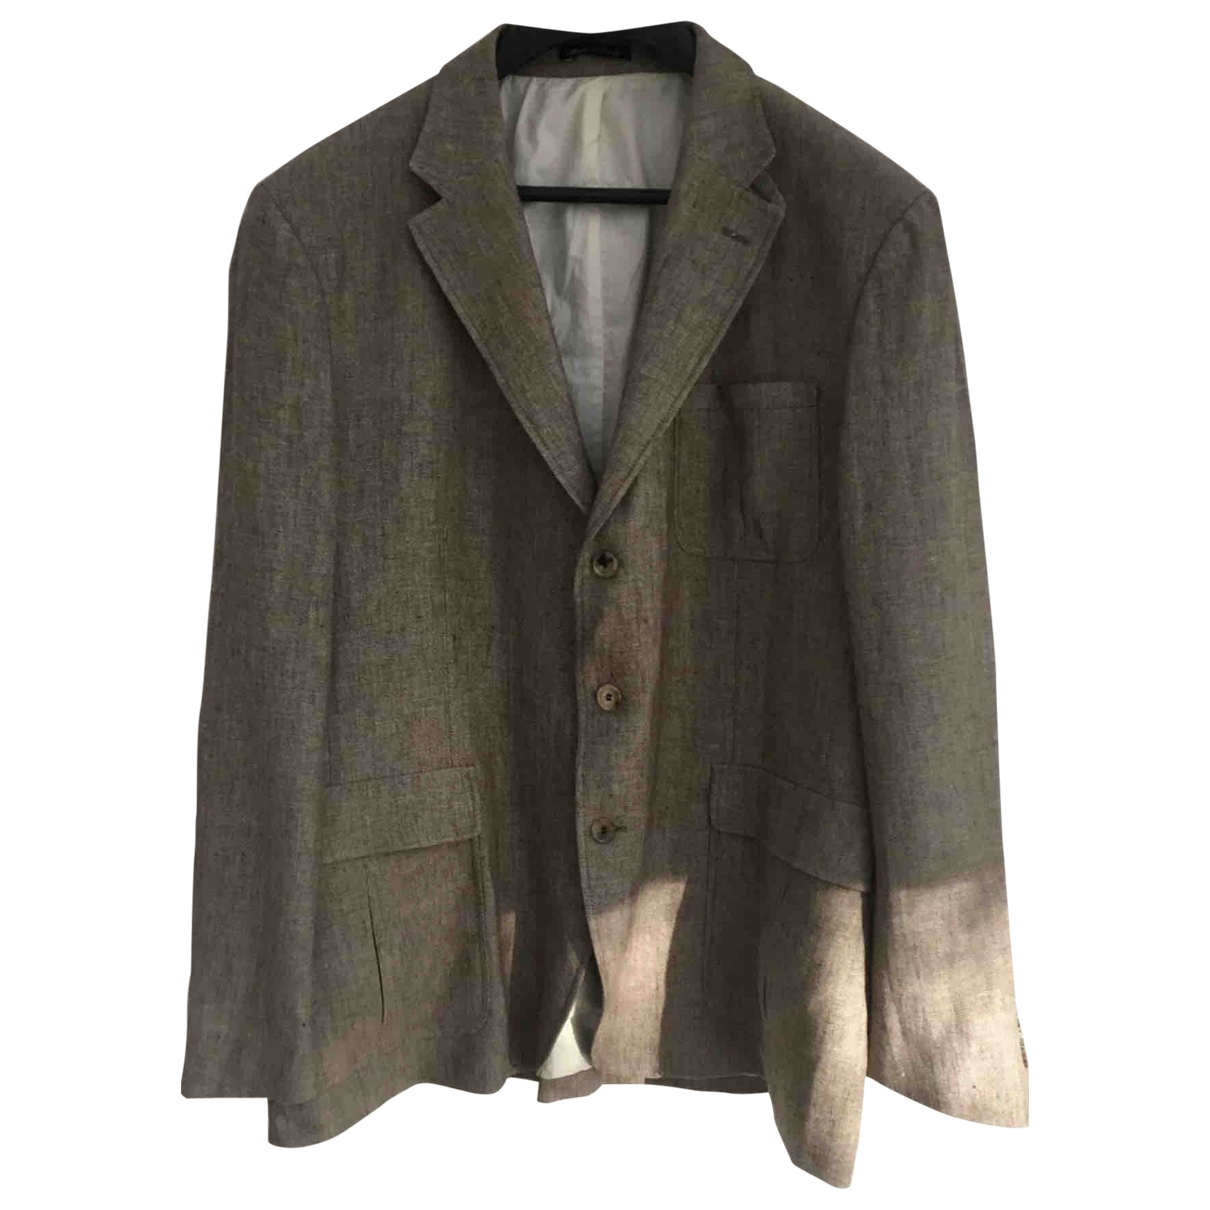 Faconnable \N Brown Linen jacket  for Men XXL International